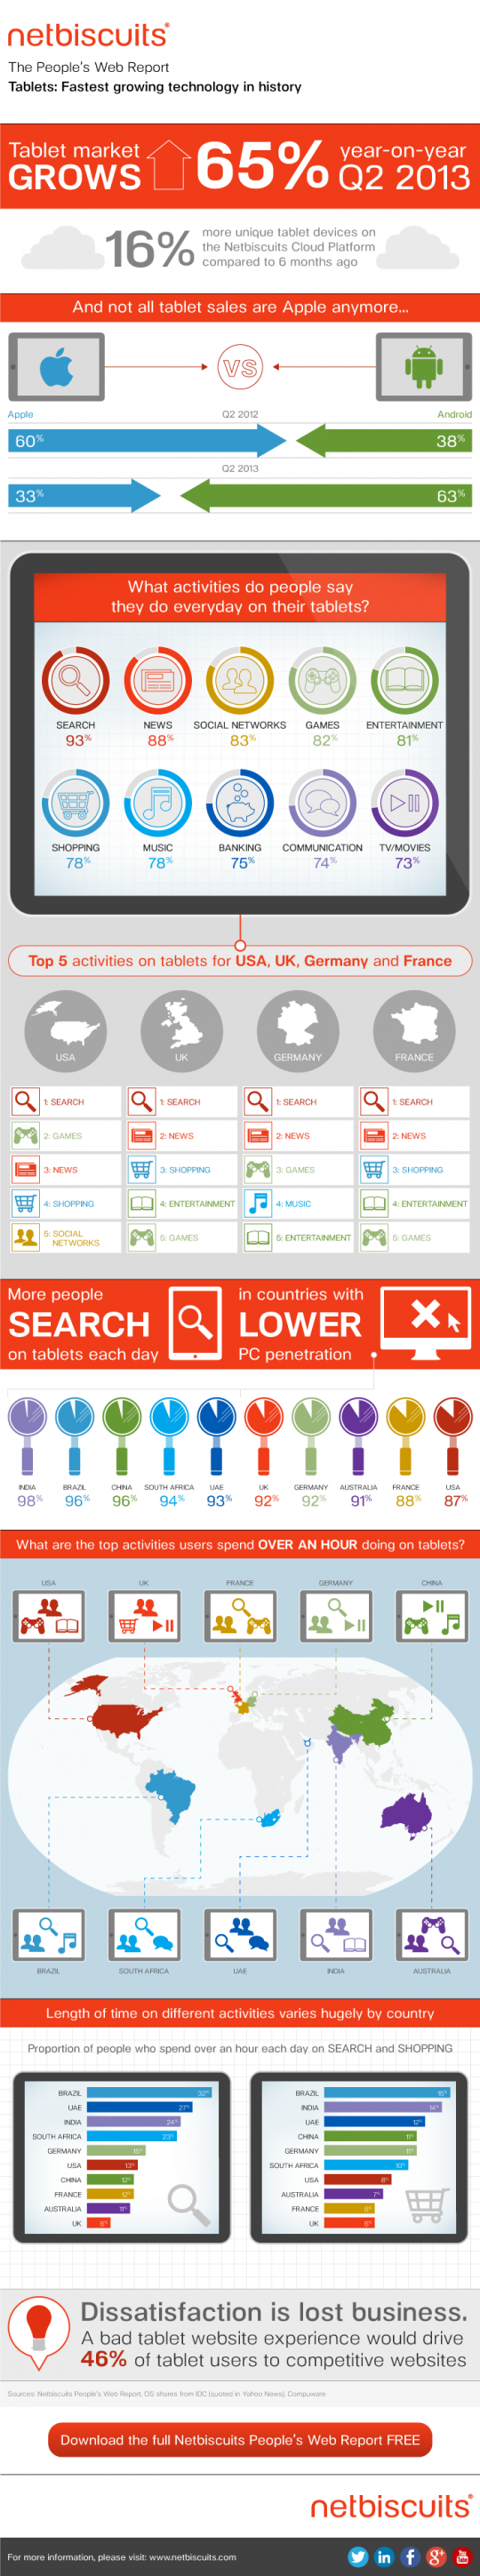 What-do-we-do-on-our-tablets-infographic-540x2898